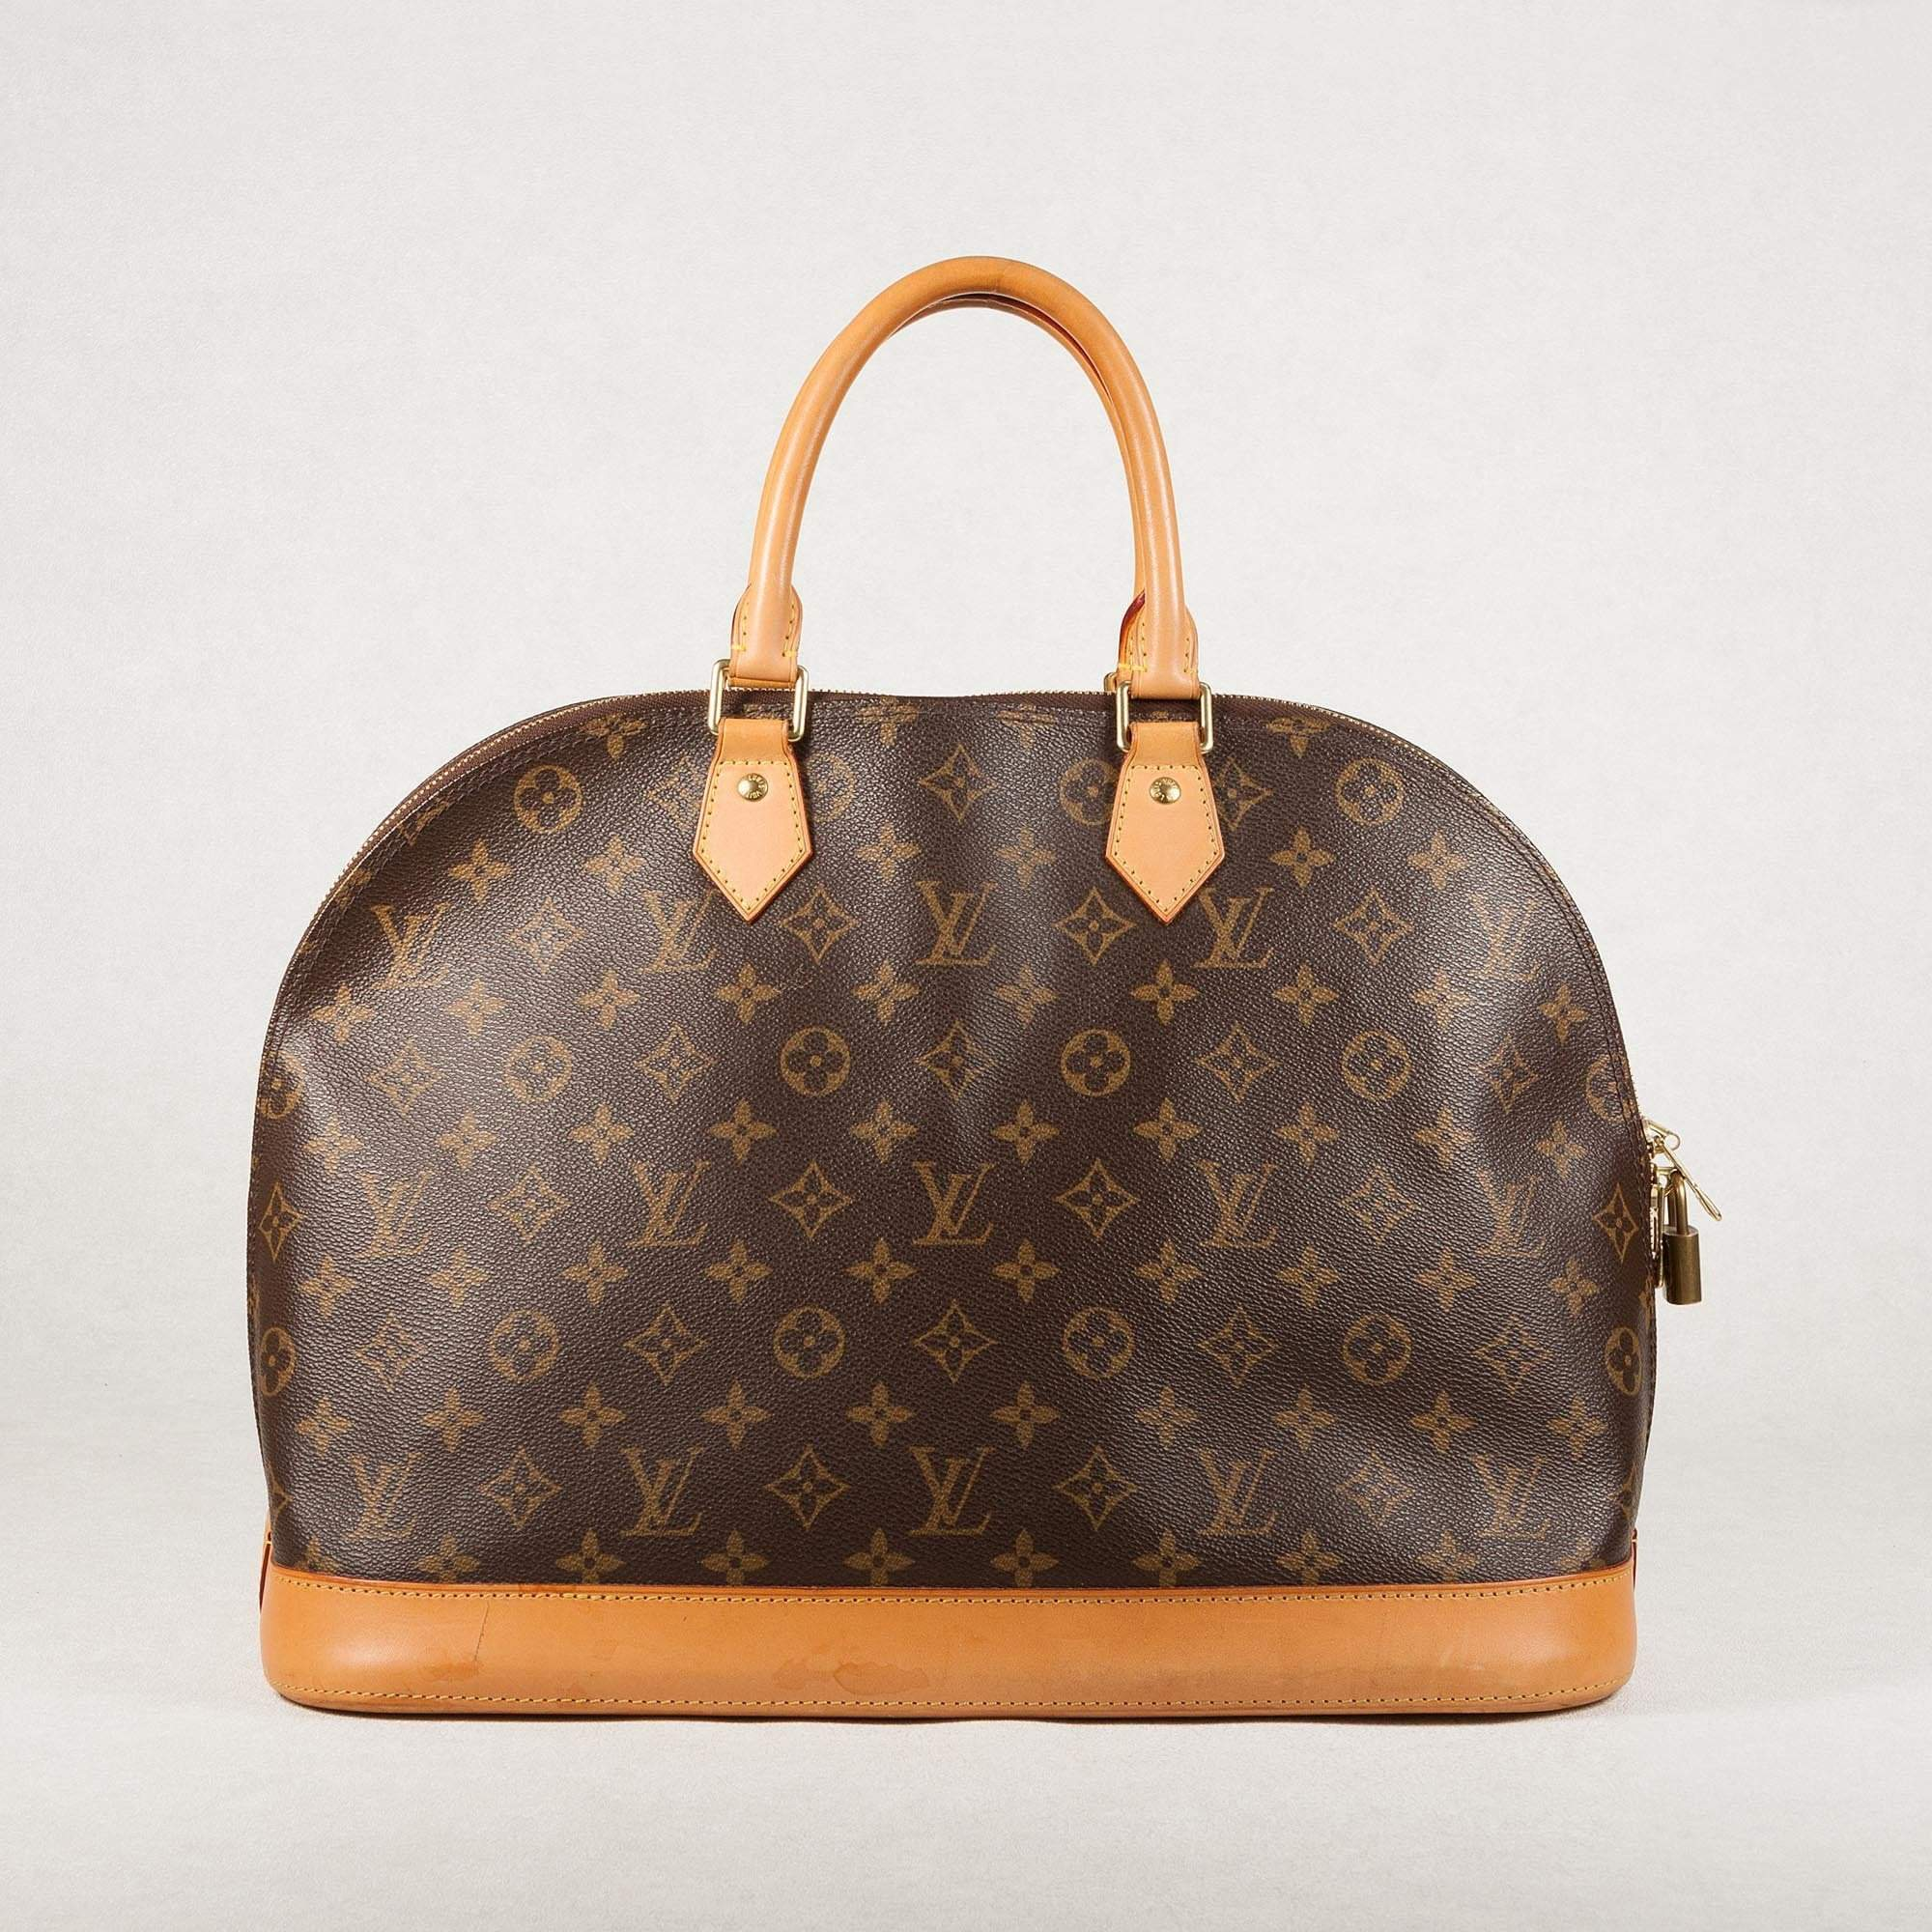 Louis Vuitton Alma Monogram Bag